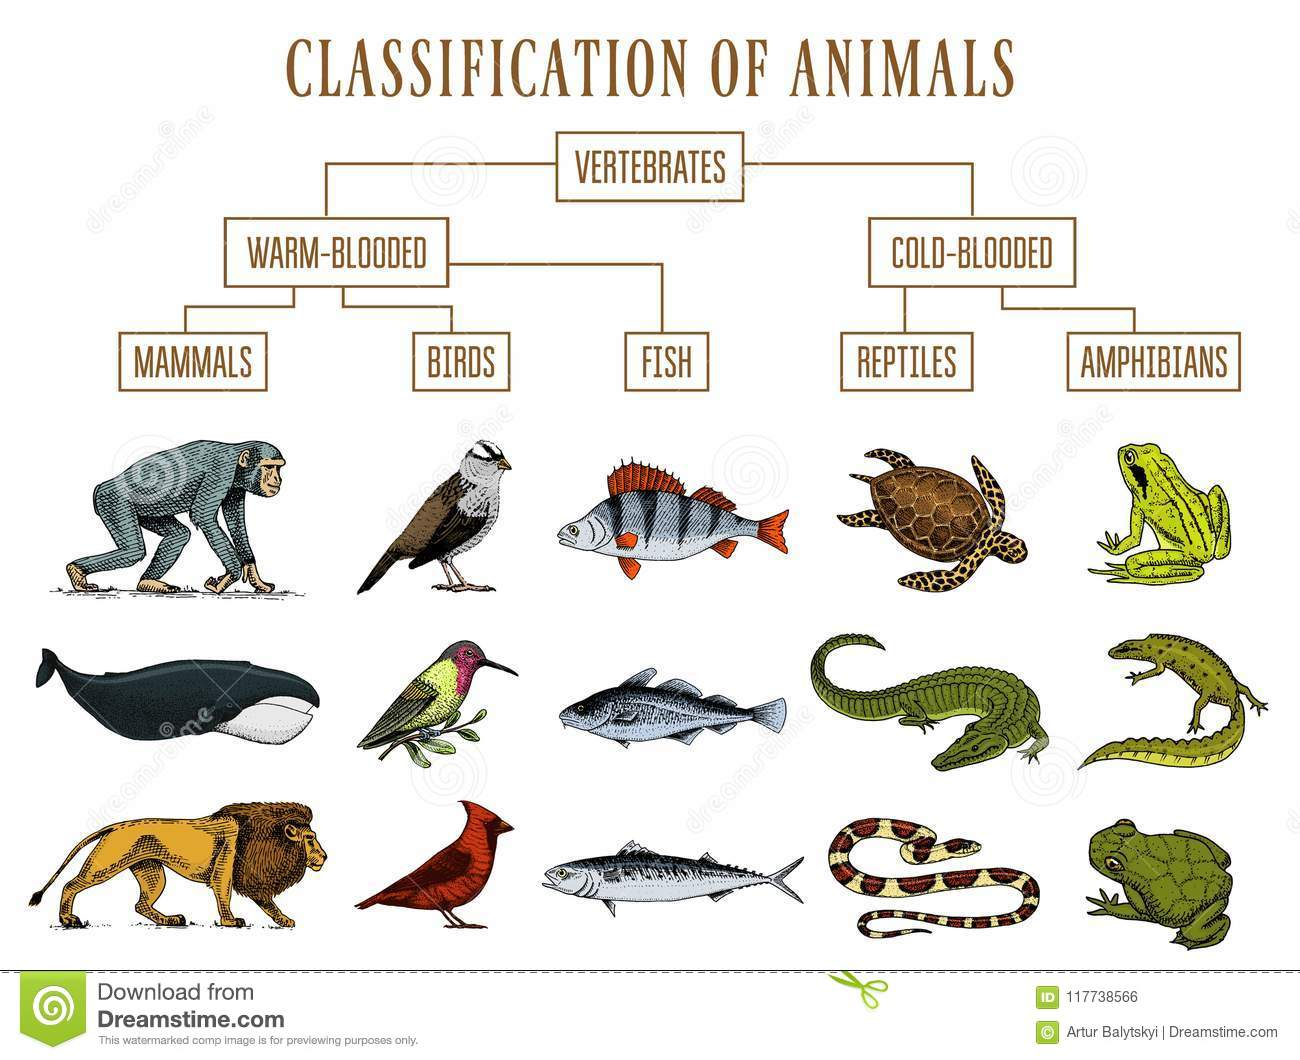 Classification Of Animals Reptiles Amphibians Mammals